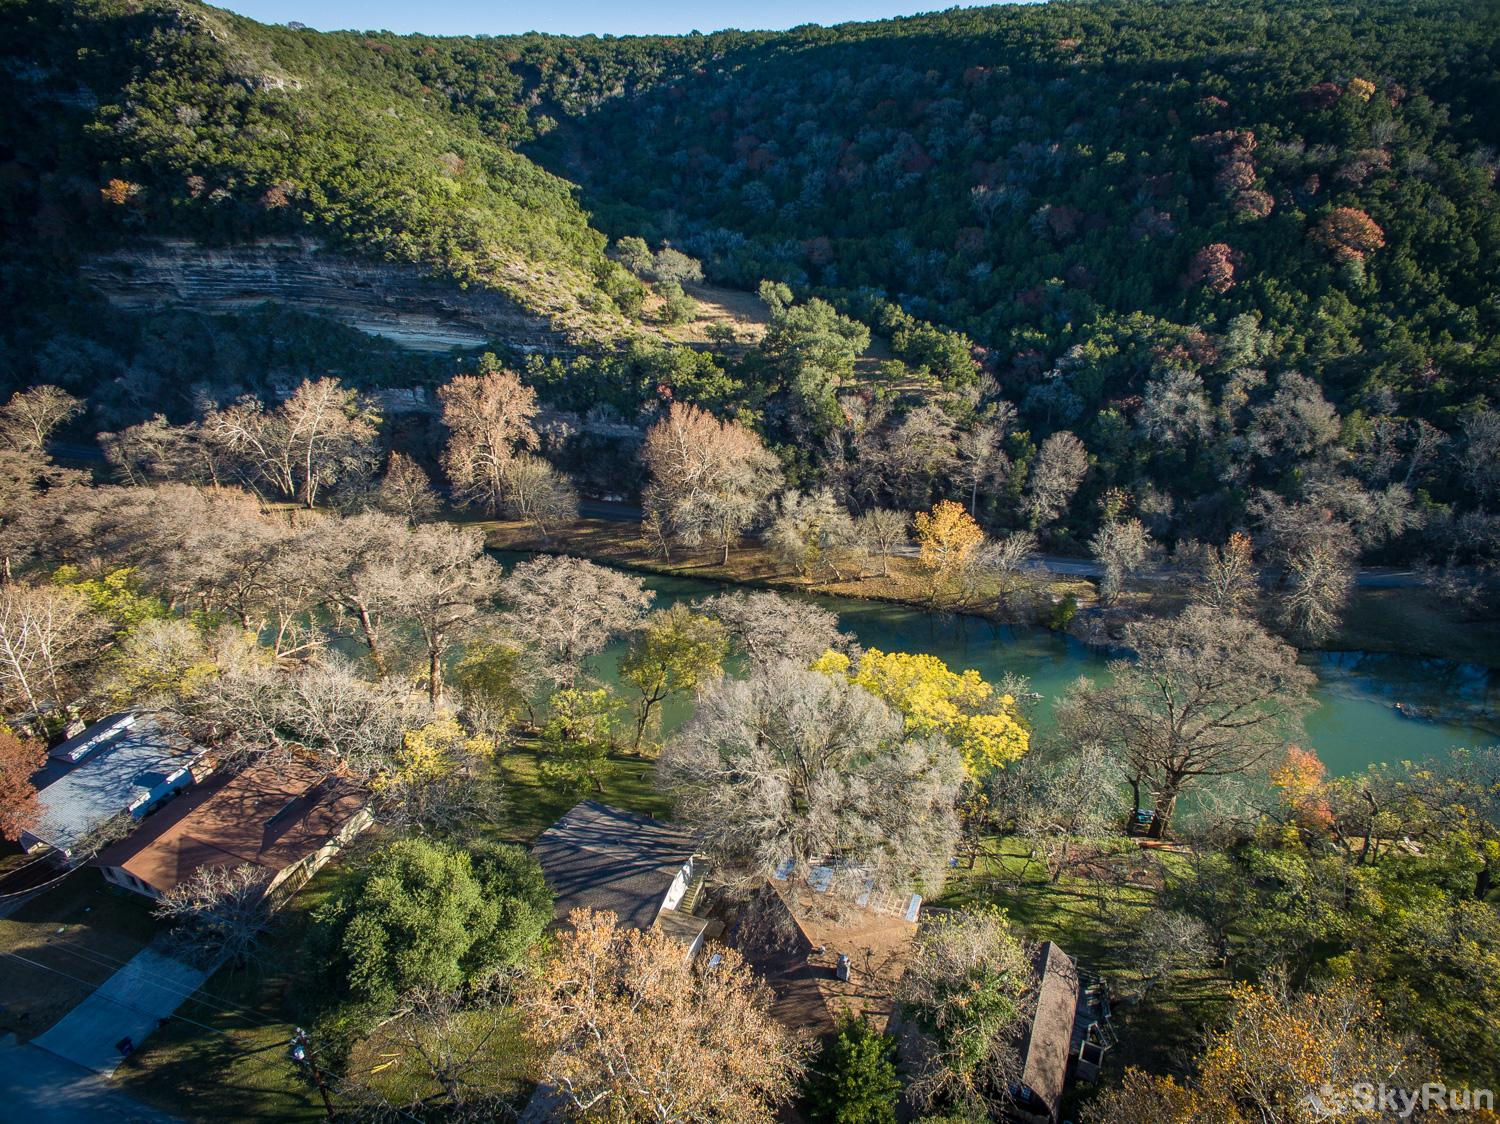 MAC'S PLACE Aerial View of Mac's Place on the Guadalupe River